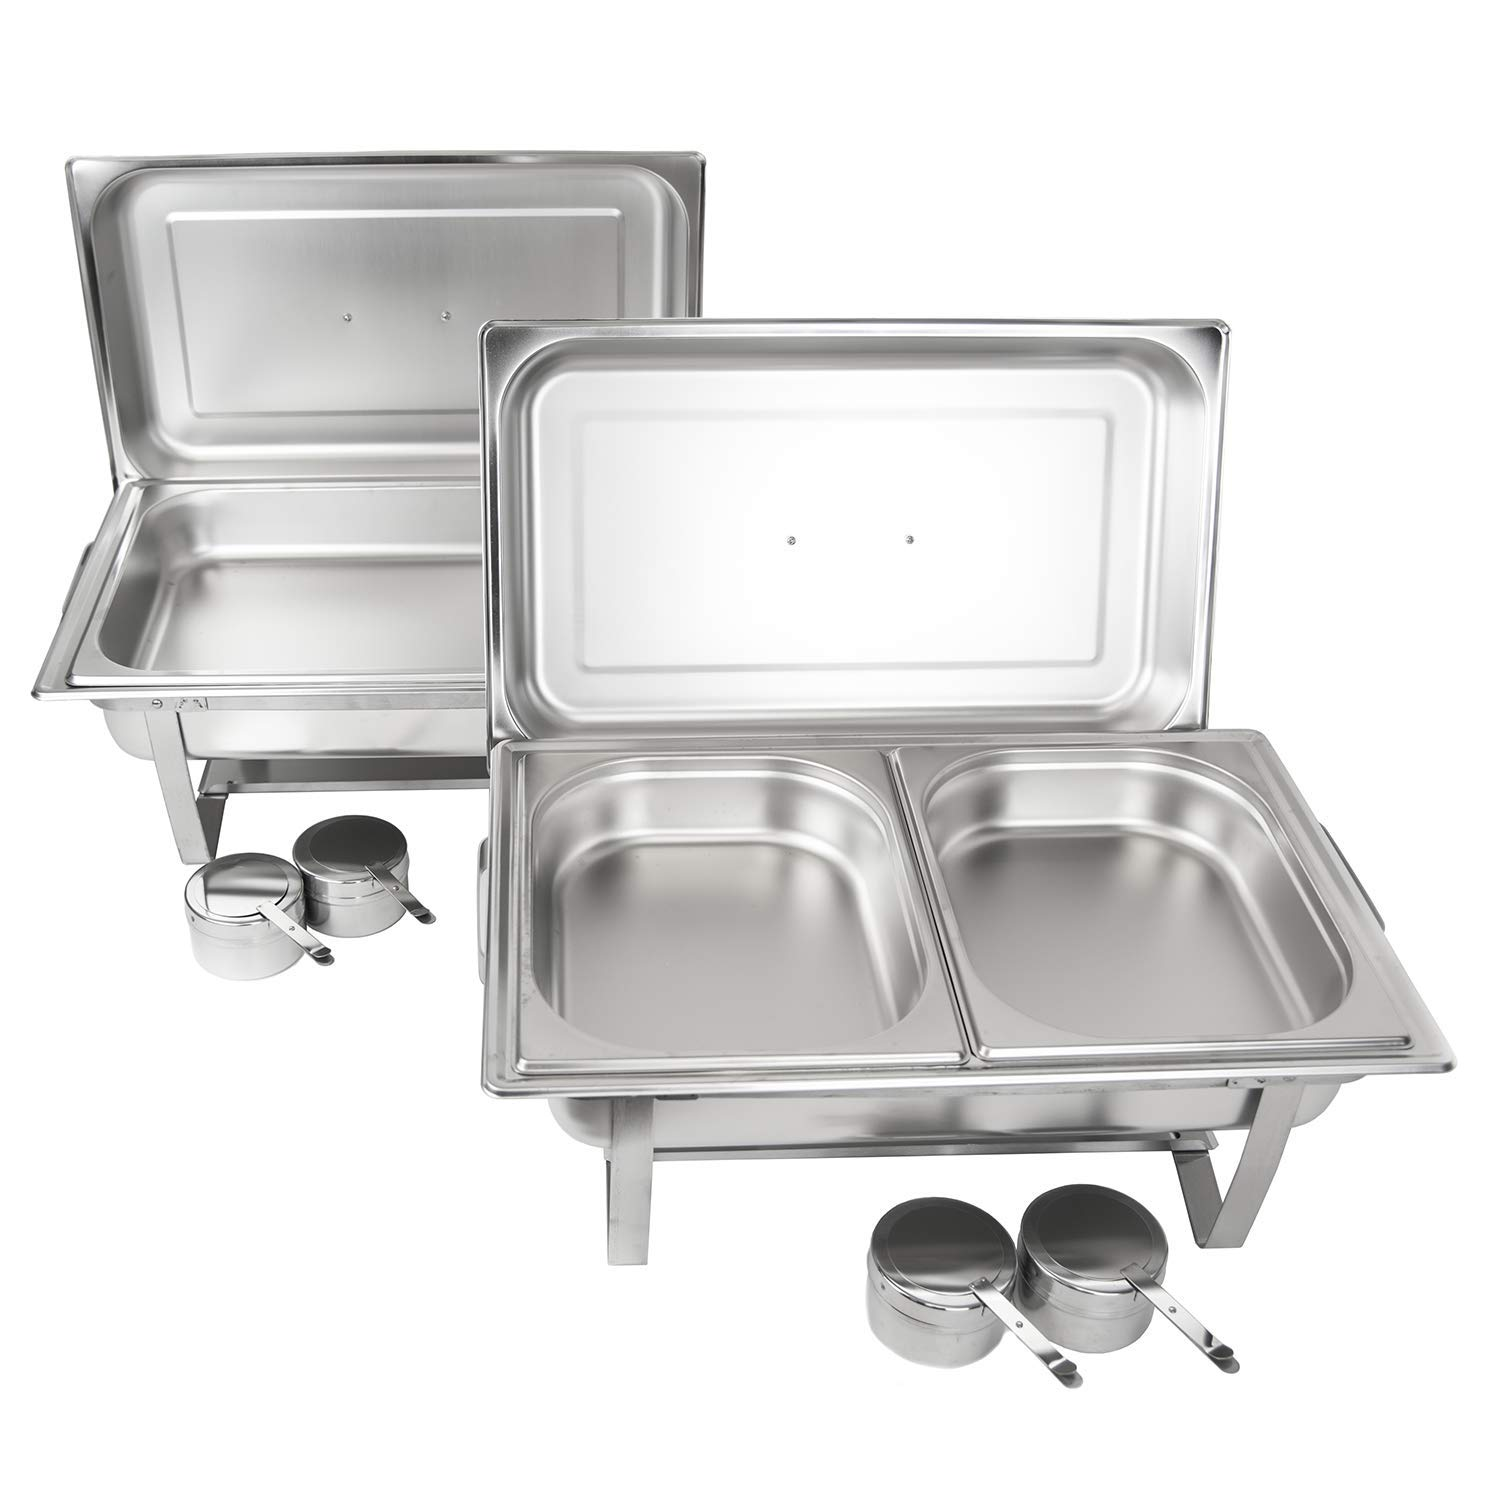 Alpha Living 8QT Chafing Dish Set with 2 Chafer, 2 Full Size Pan, 2 Half Pans High Grade Stainless Steel welded legs by ALPHA LIVING